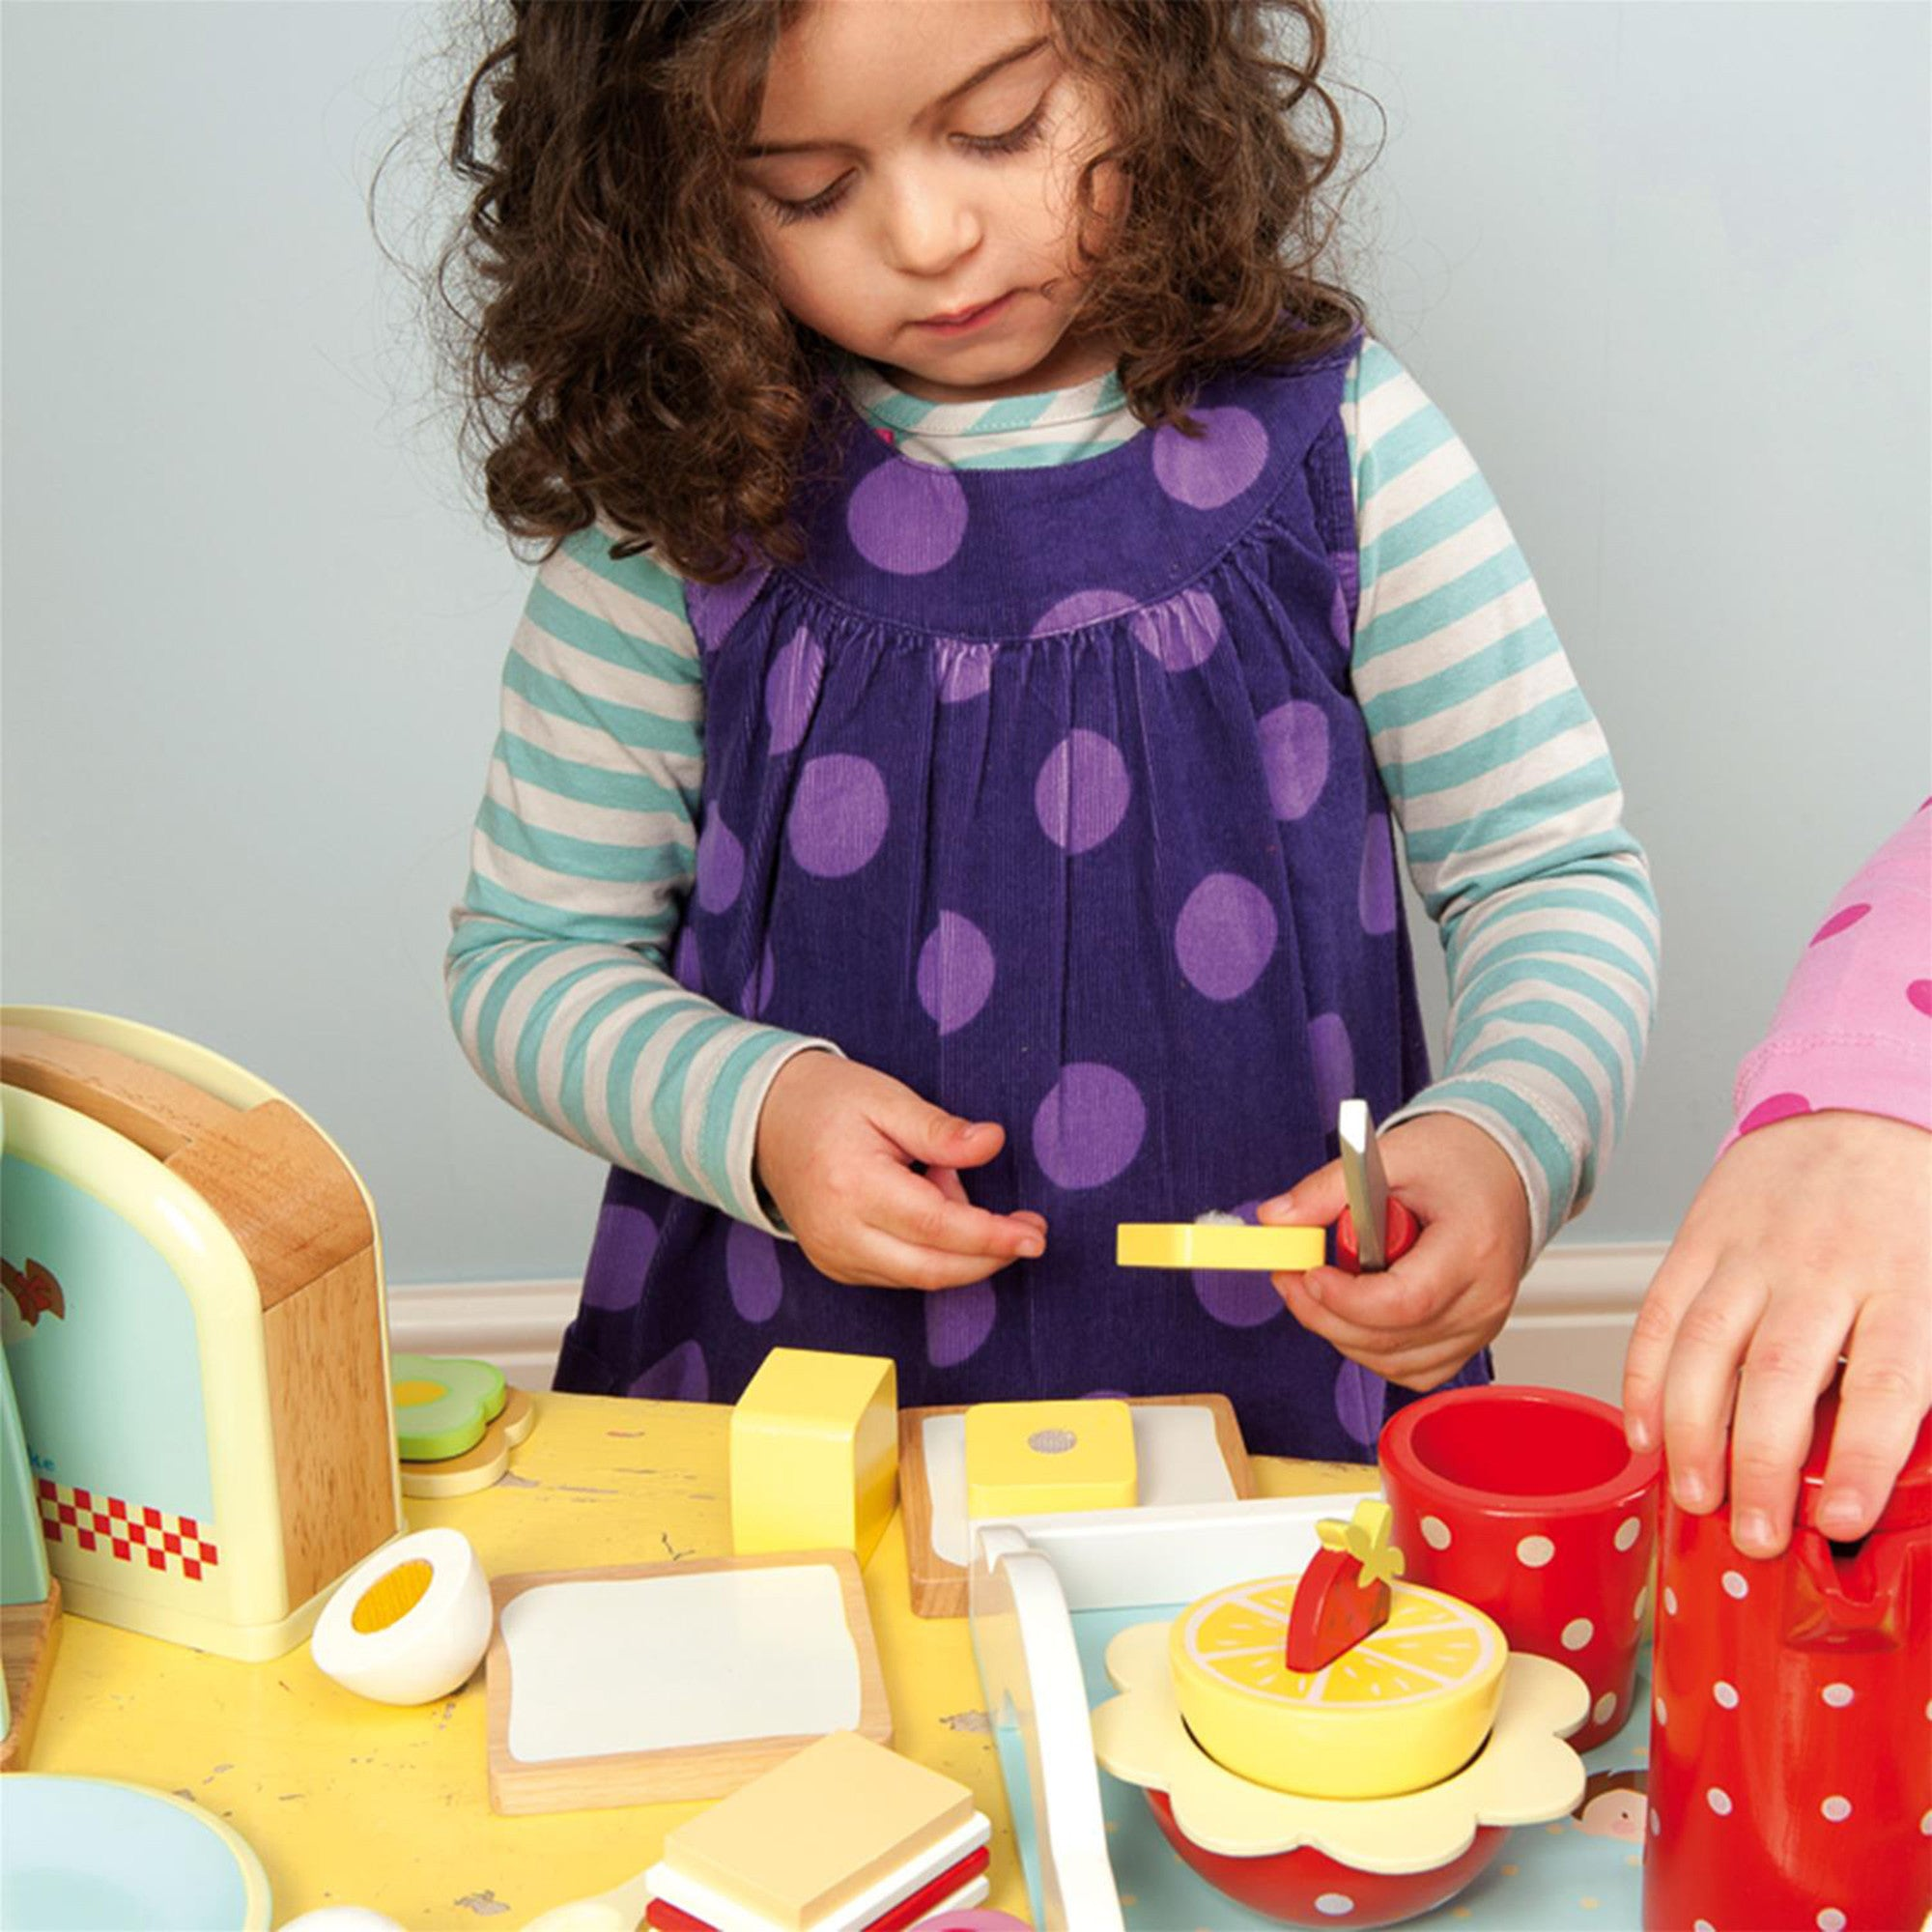 Le Toy Van Honeybake Toaster Set Le Toy Van Toy Kitchens & Play Food at Little Earth Nest Eco Shop